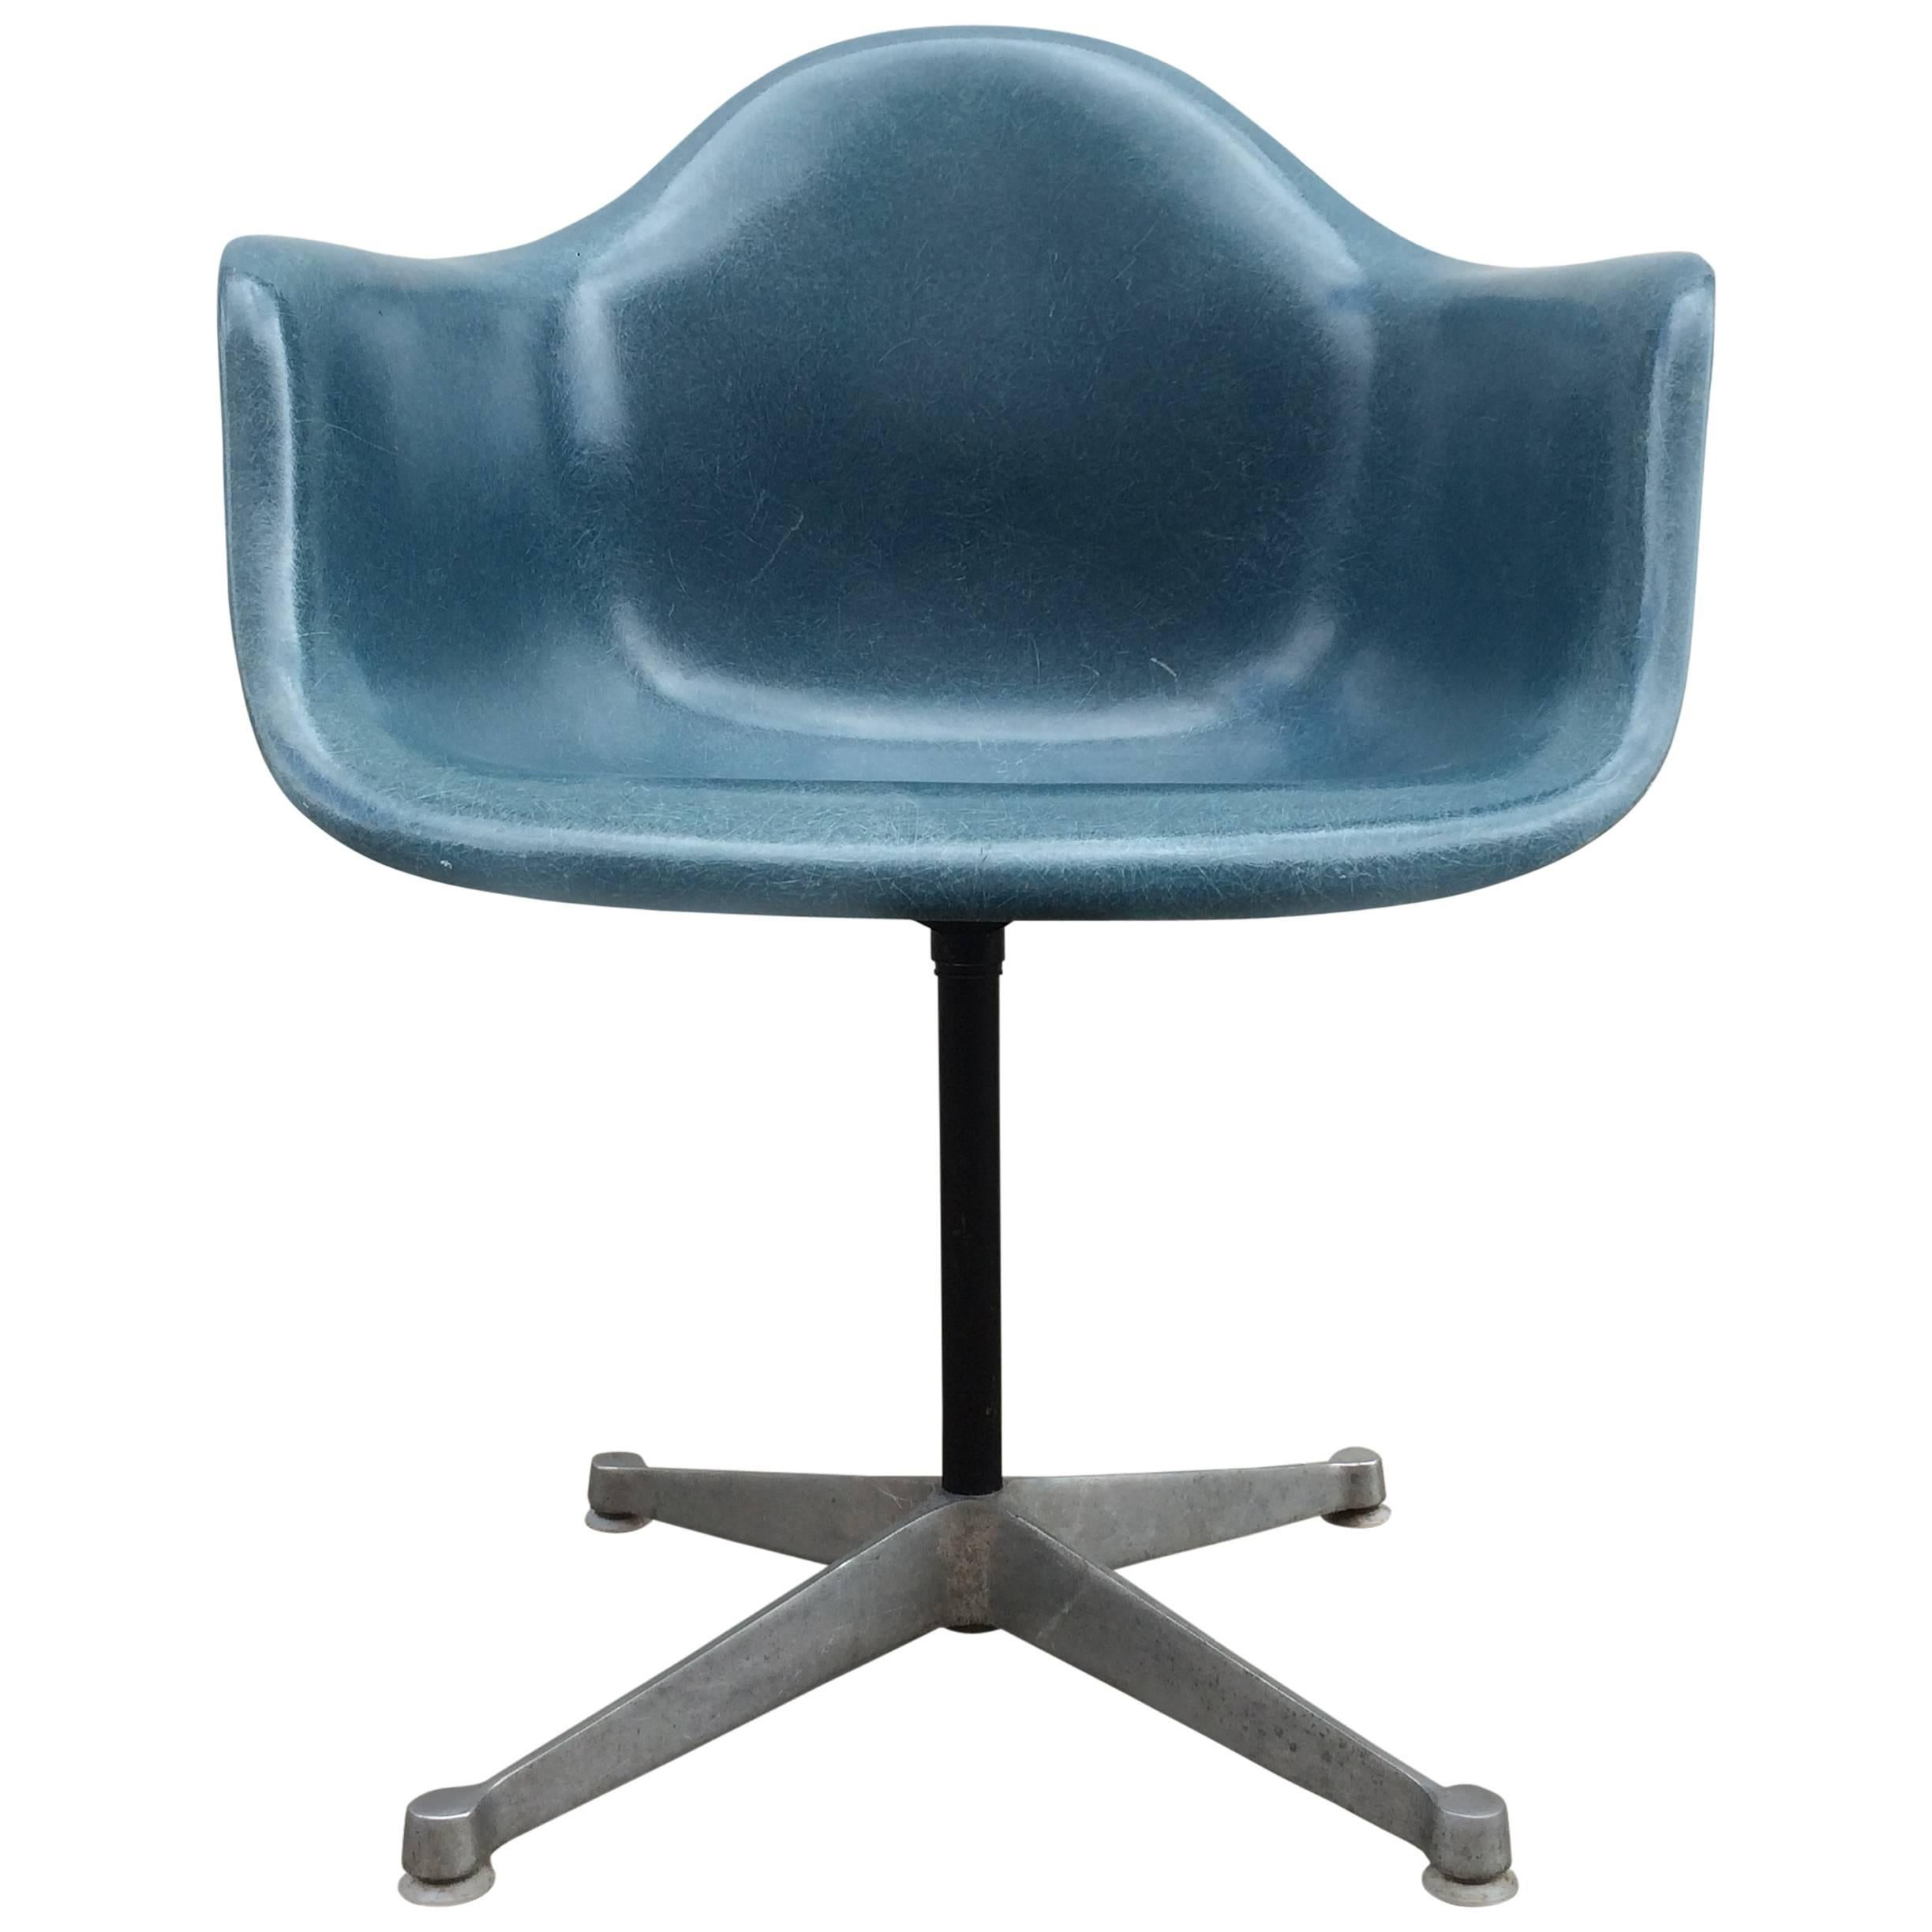 Rare Slate Blue Herman Miller Eames Chair For Sale at 1stdibs